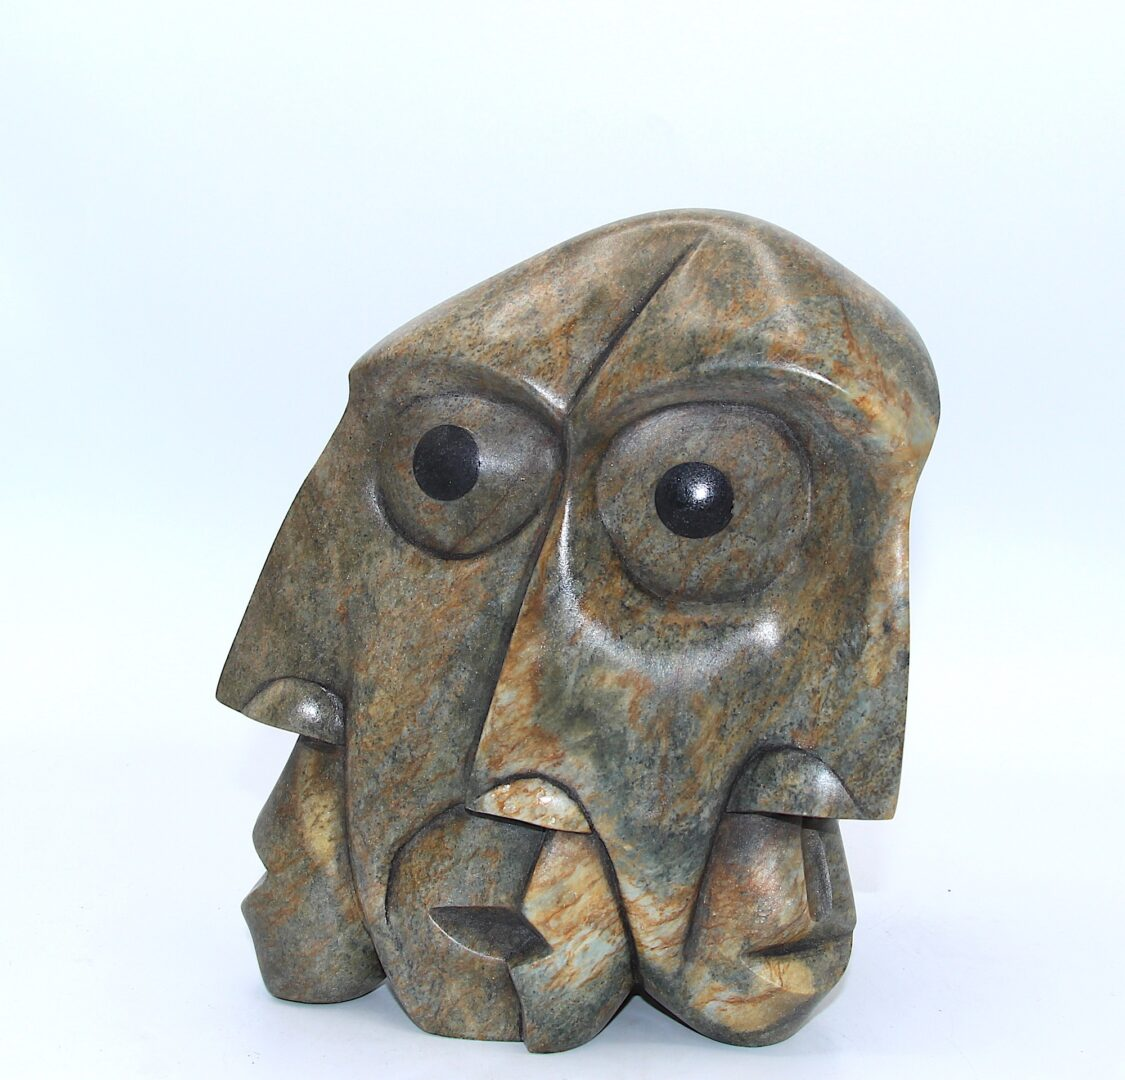 opening days iroquois art sculpture made in soapstone